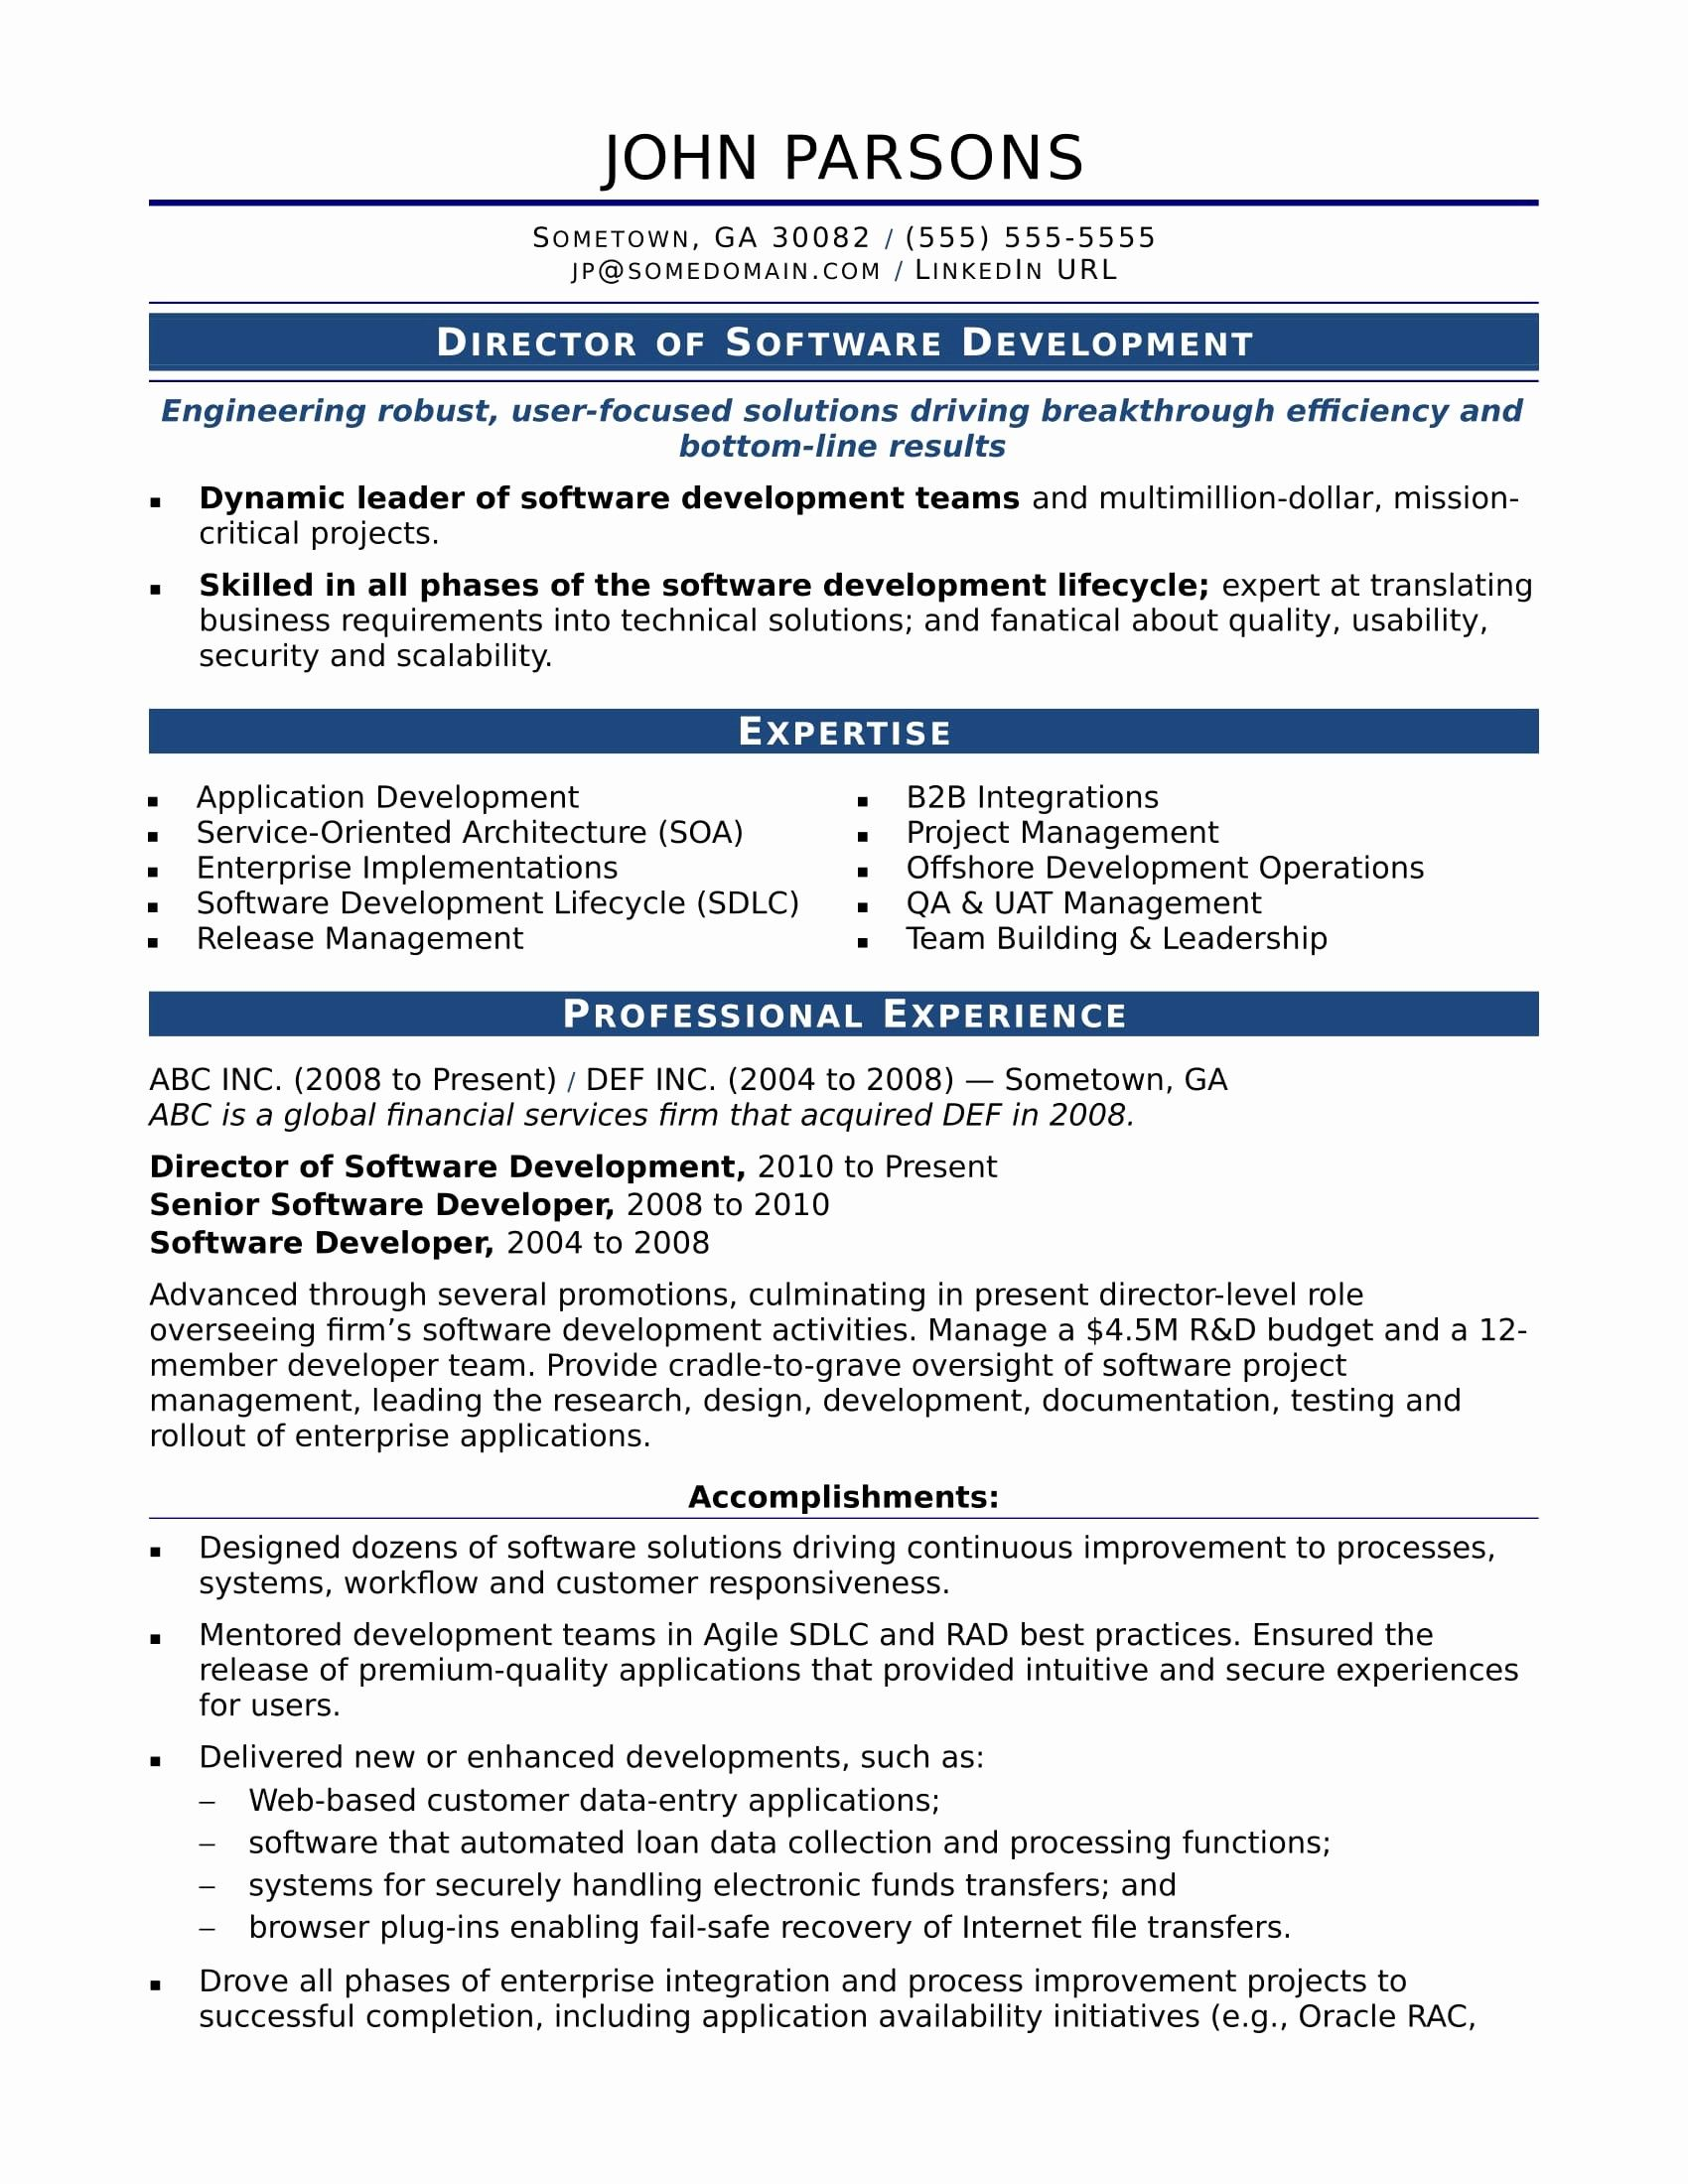 New Sample Resume for An Experienced It Developer in 2020